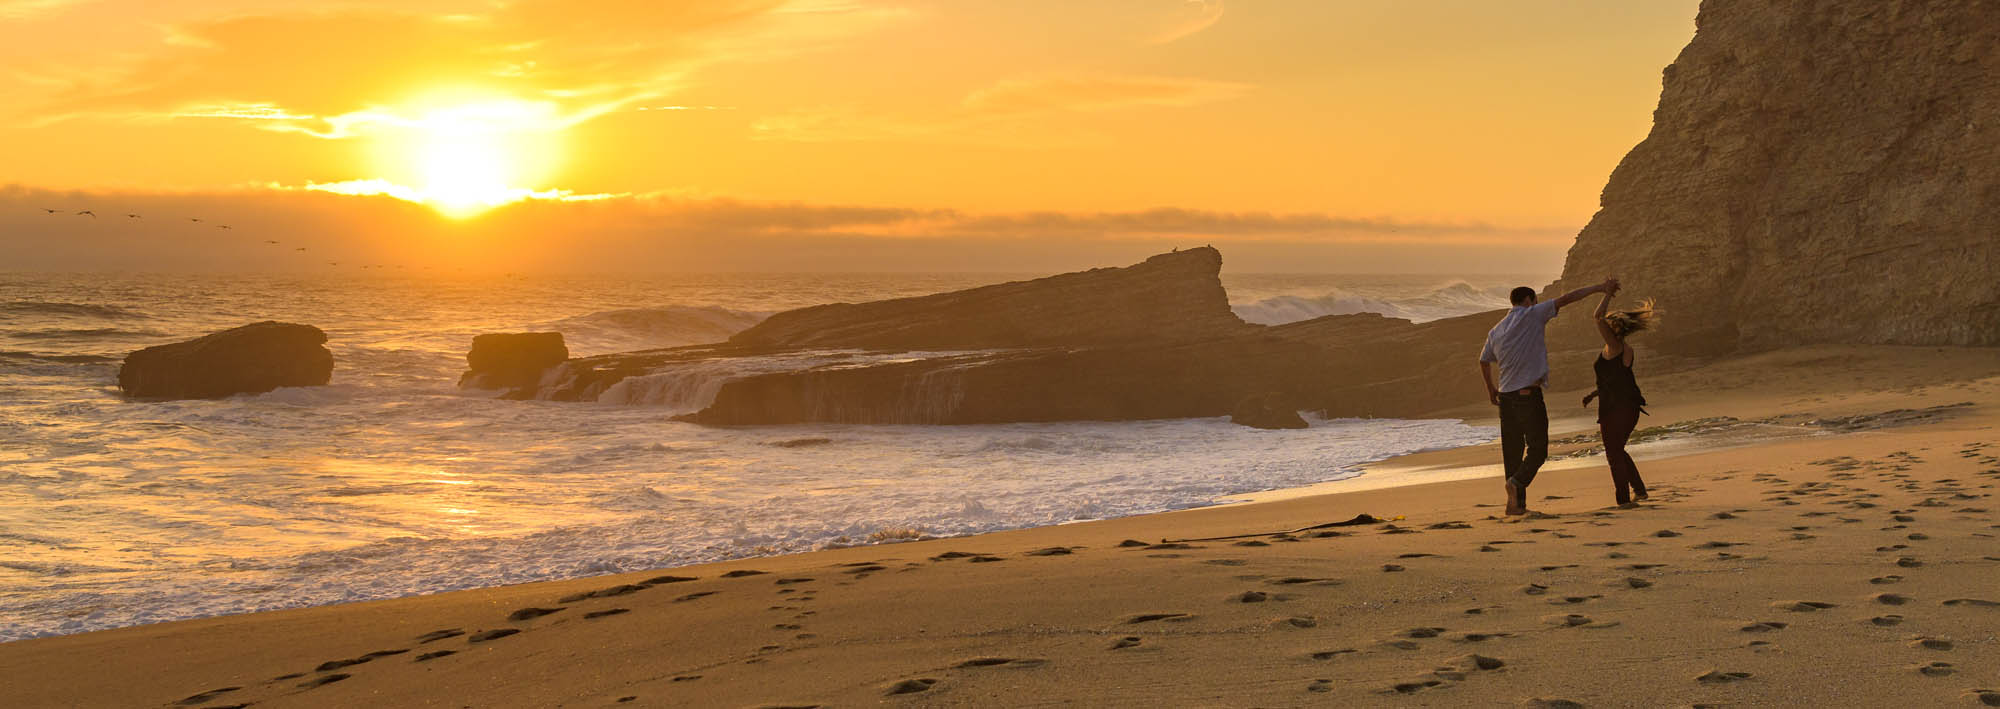 5886_Kendall_and_Andrew_Couples_Anniversary_Photography_Panther_Beach_Santa_Cruz.jpg